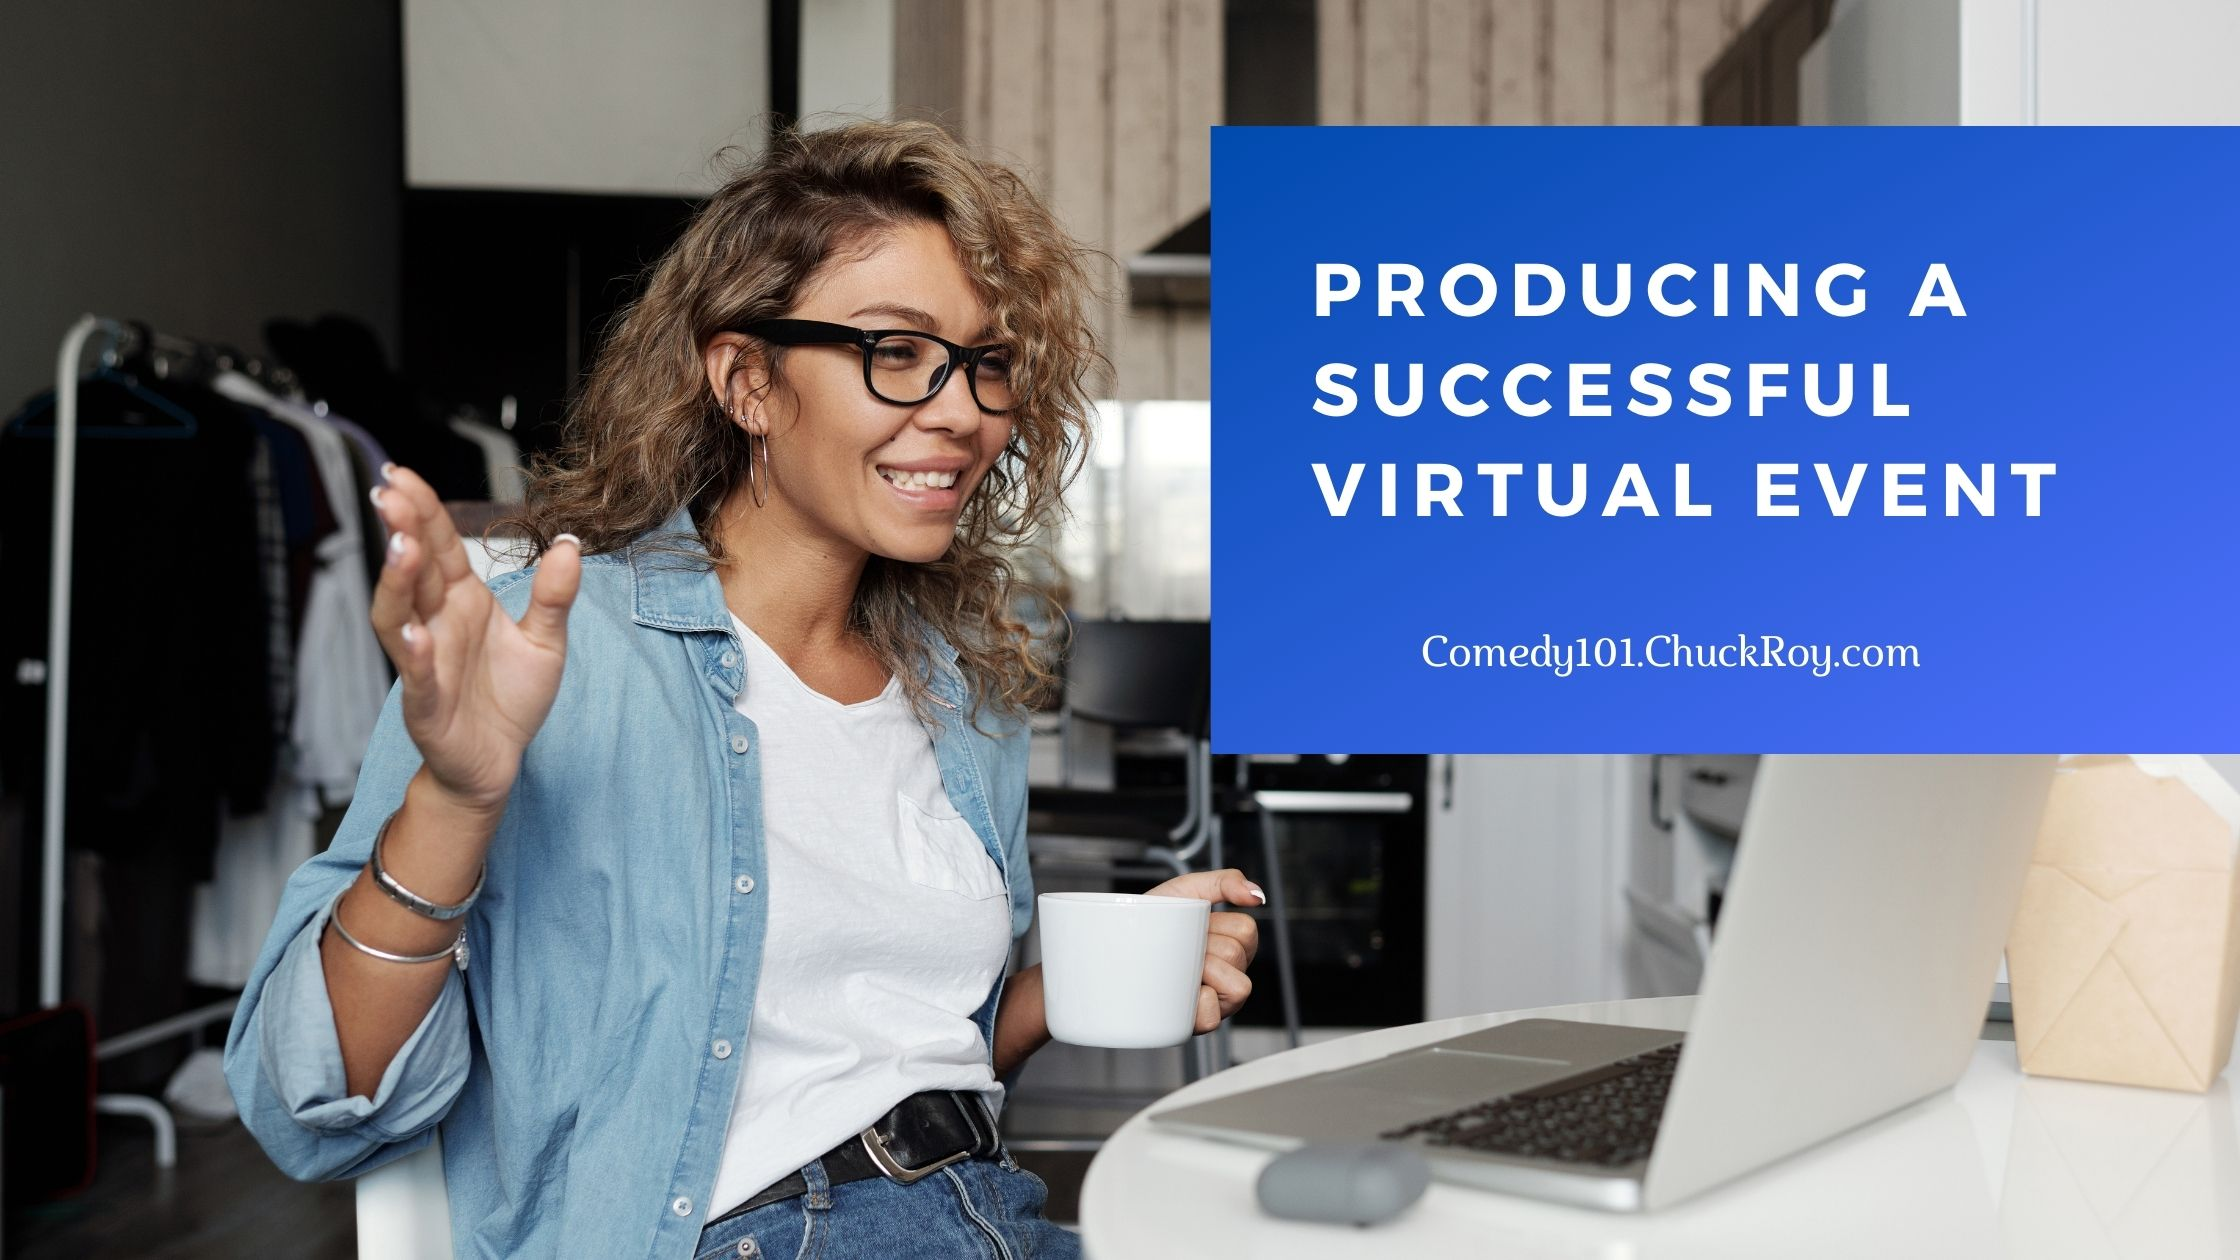 STEP 3 Producing a Successful Virtual Event